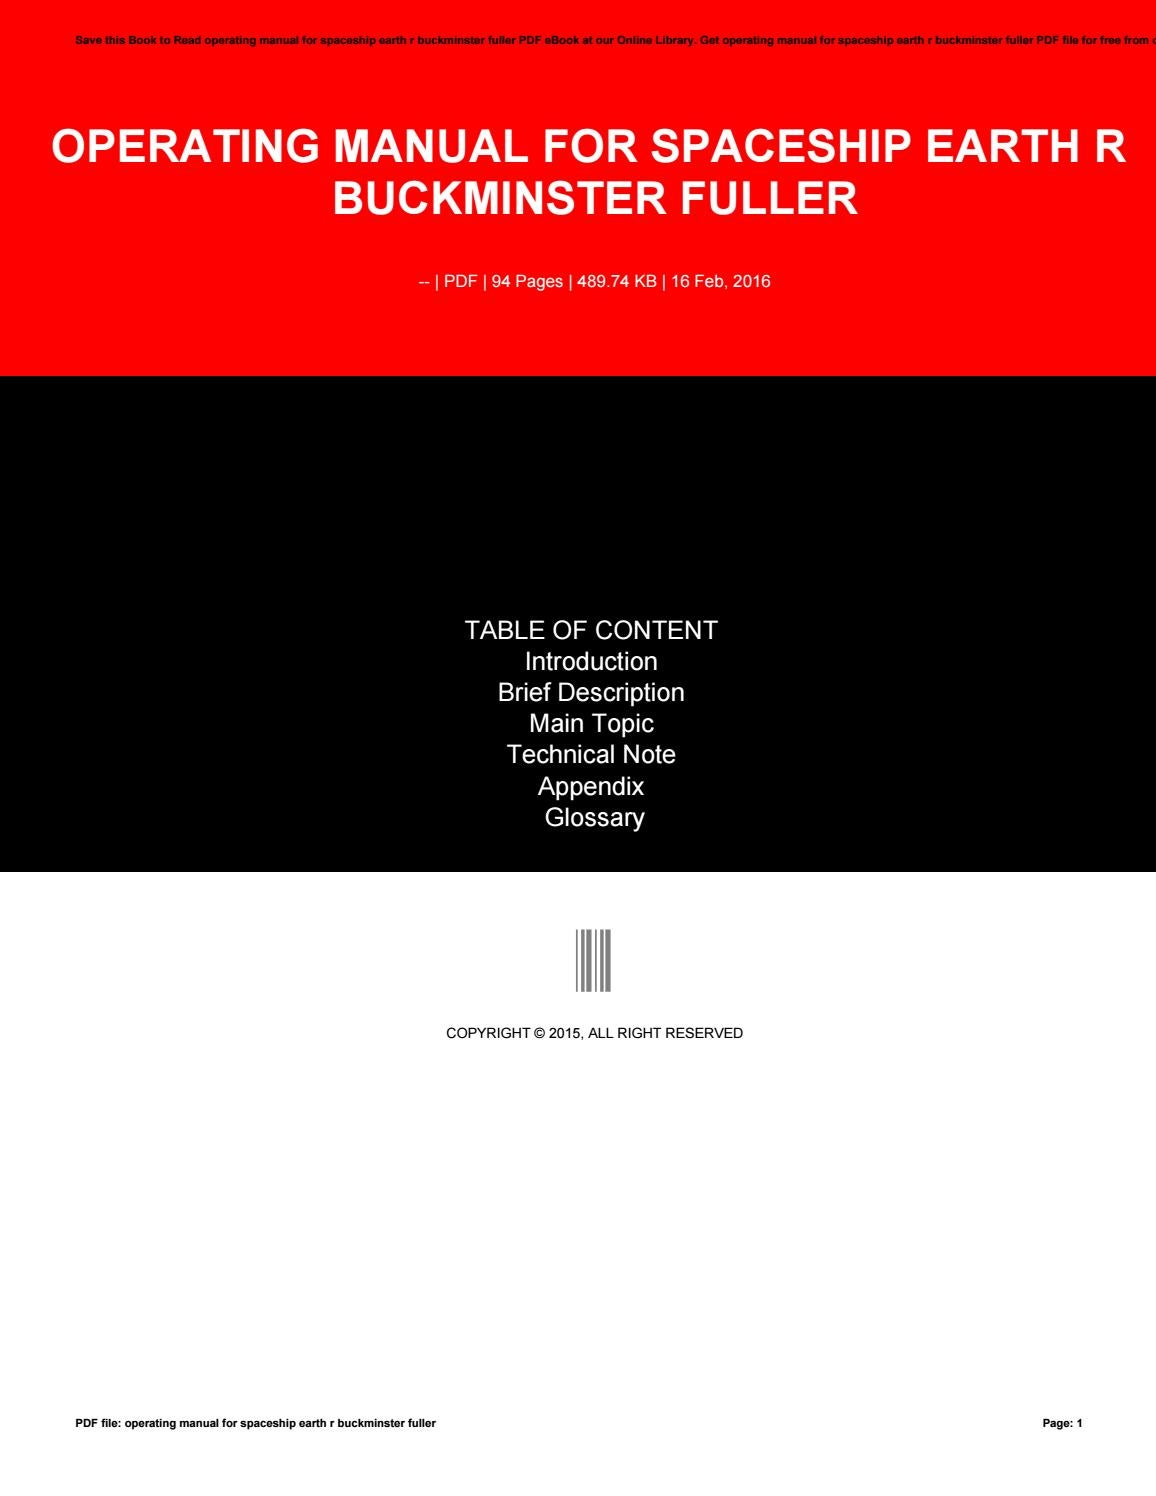 Operating manual for spaceship earth r buckminster fuller by w623 - issuu